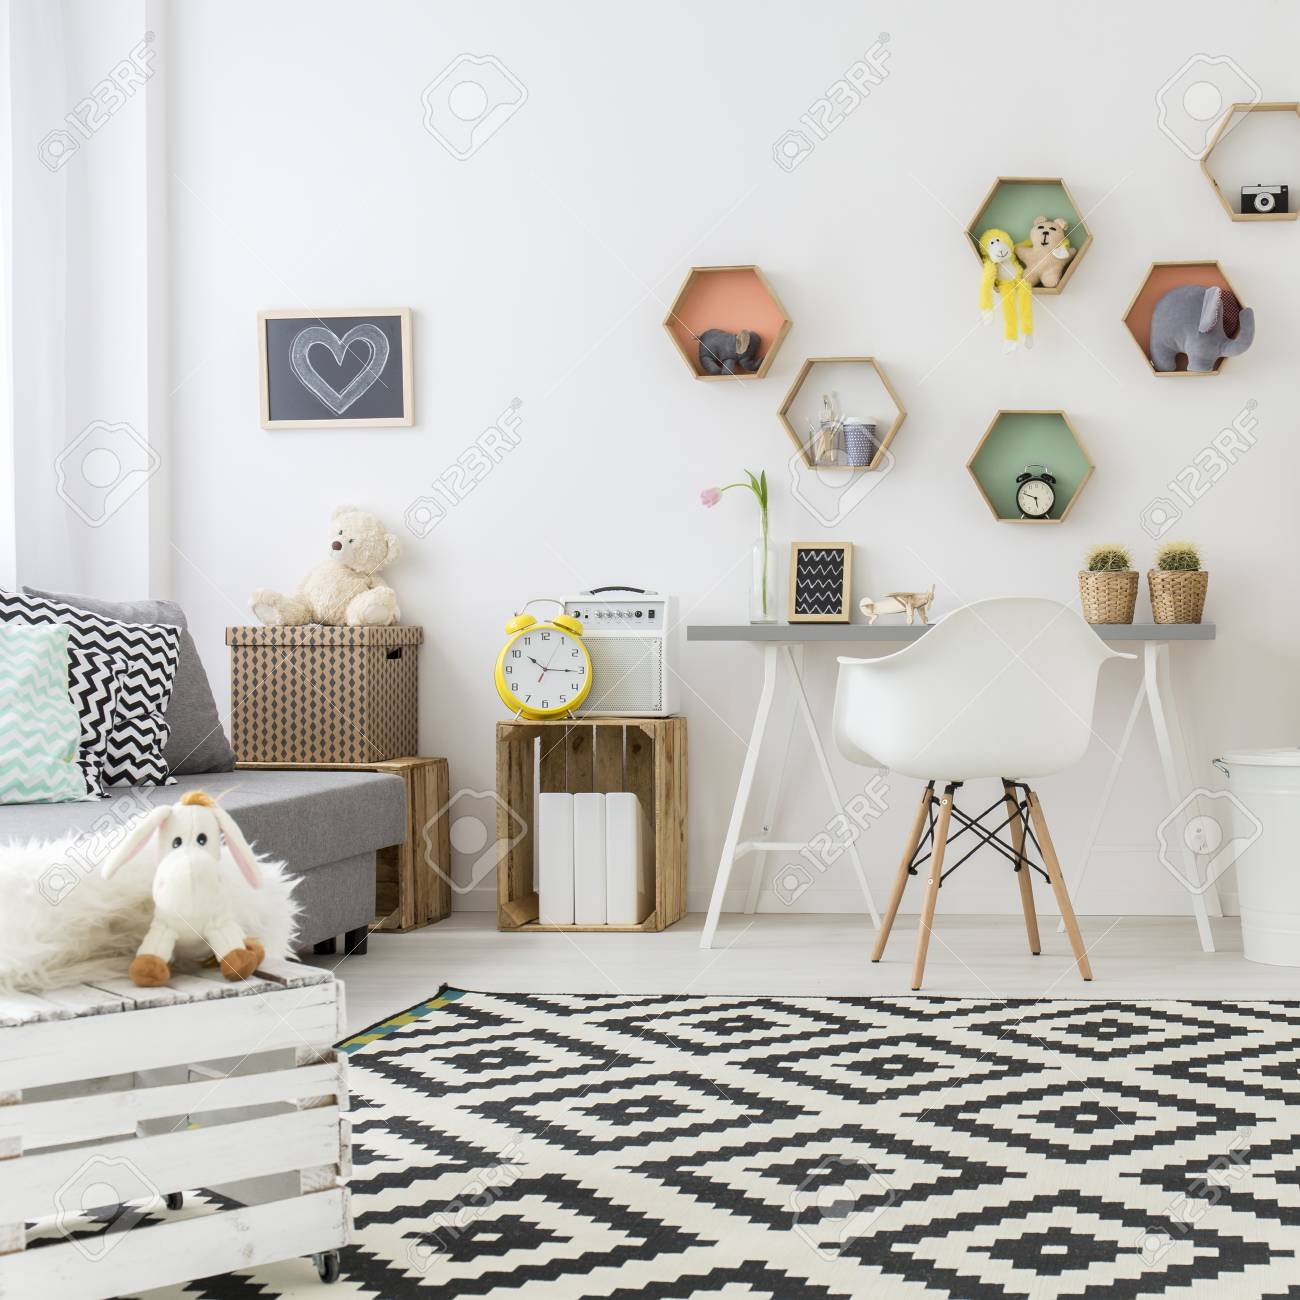 Kinderzimmer Mit Teppichboden Stock Photo